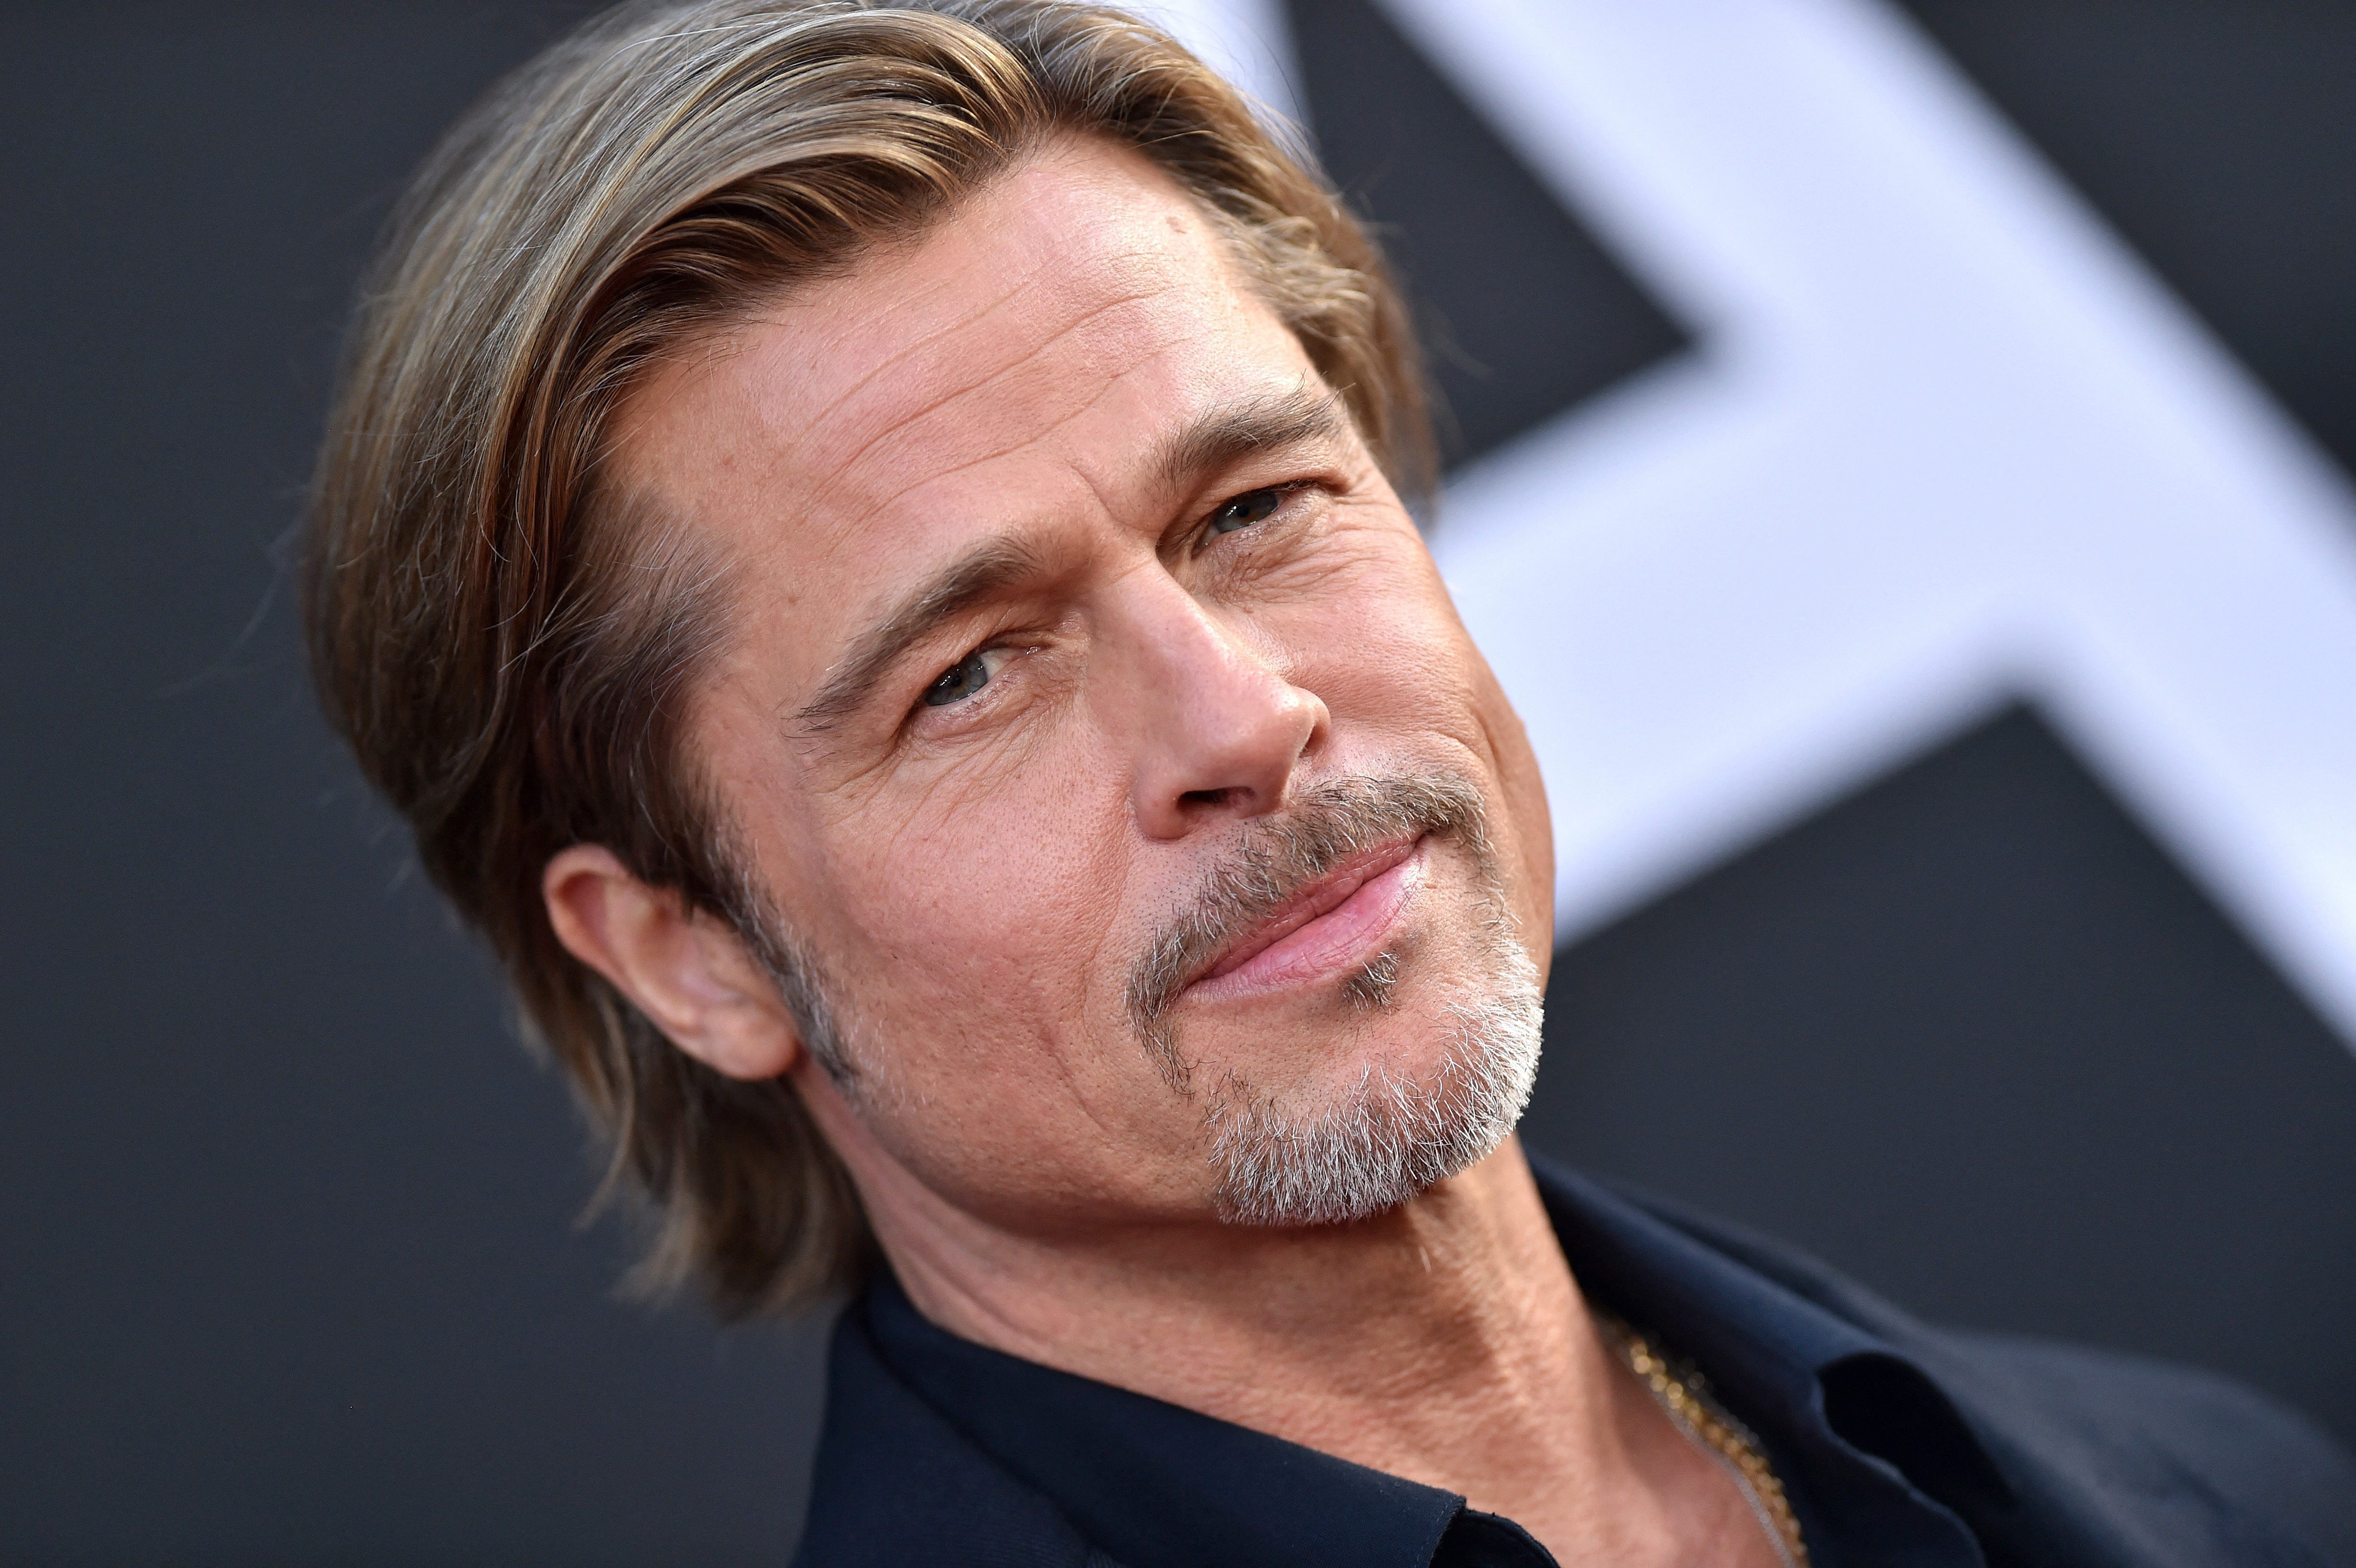 Brad Pitt Looks Bloodied And Bruised Shooting 'Bullet Train' With Joey King In L.A.